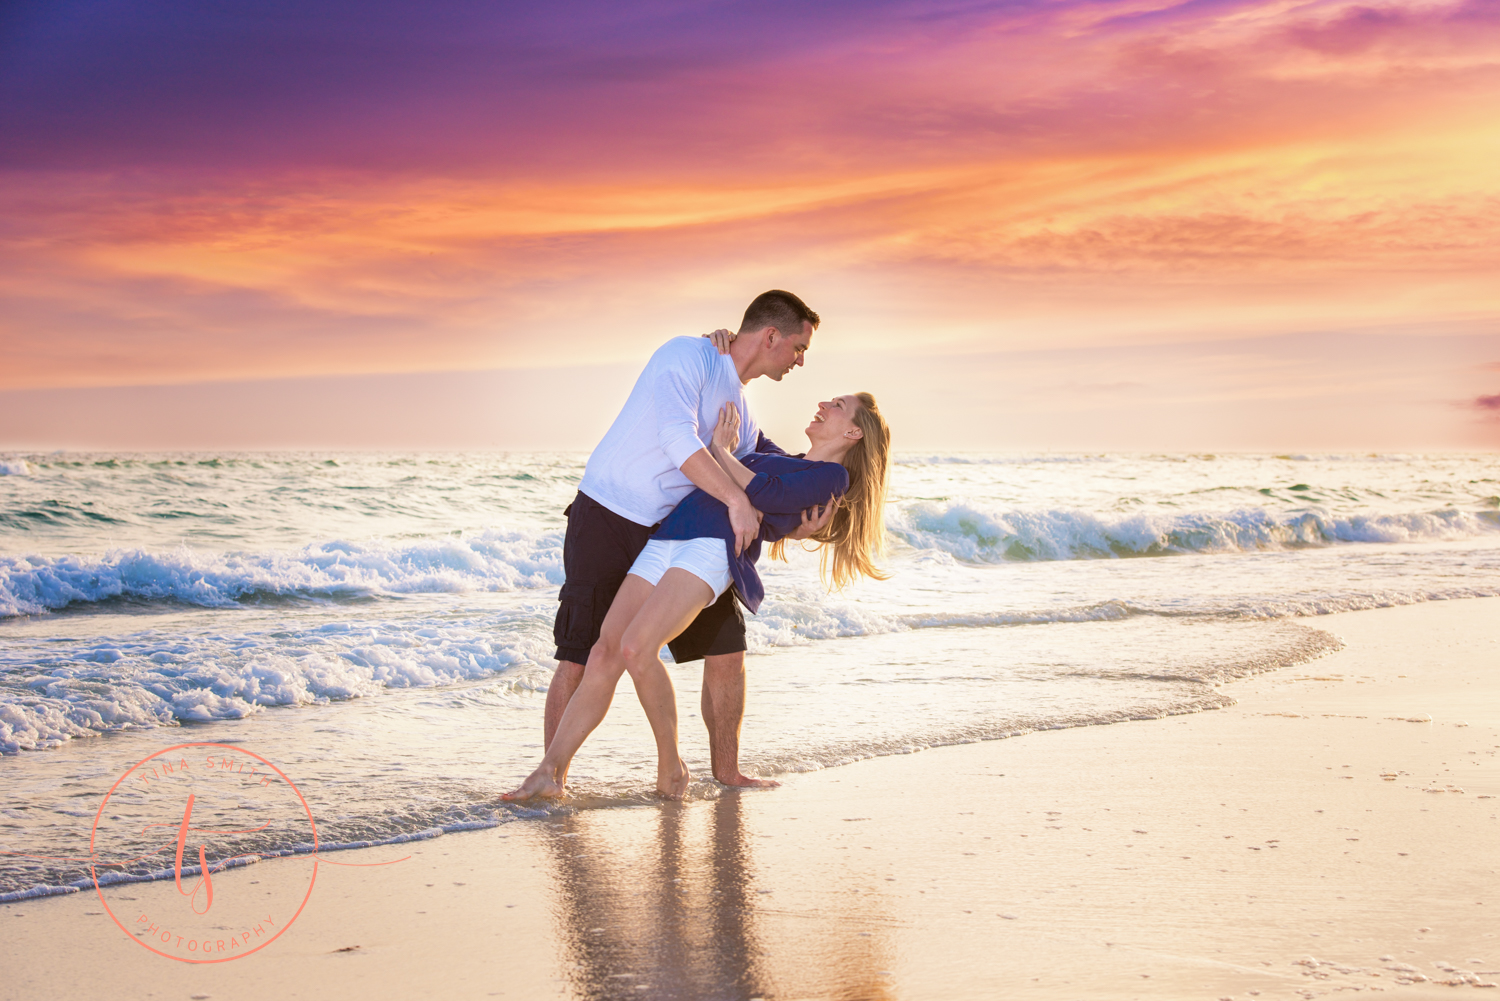 engaged couple dipping at sunset in water on beach in destin